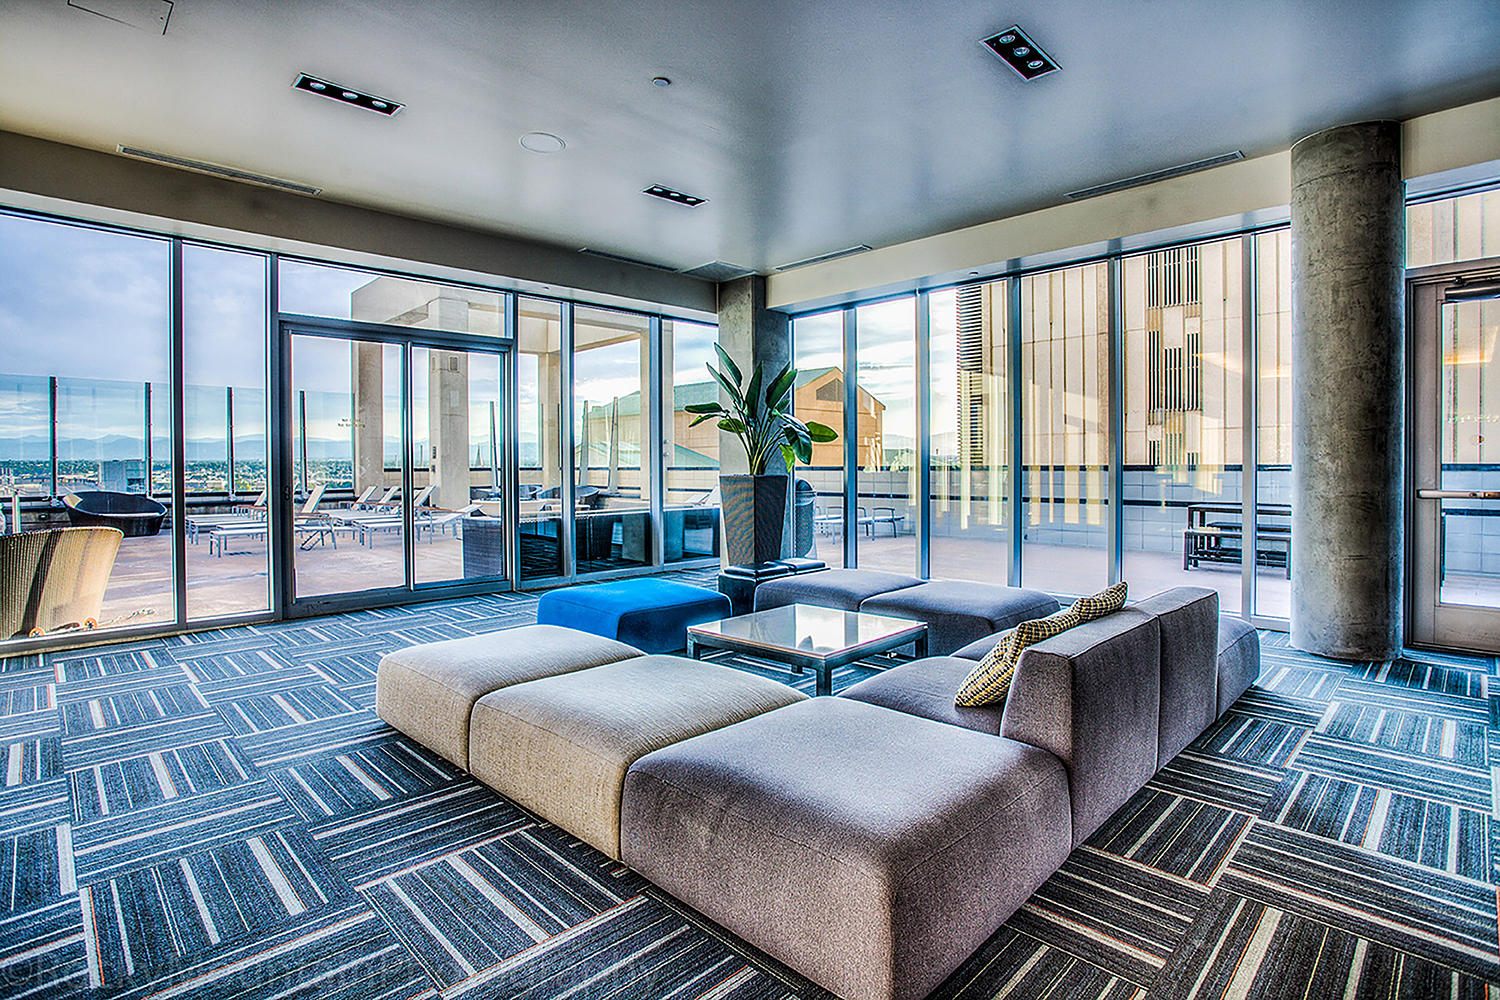 5 COMMERCIAL - MULTIFAMILY INTERIOR